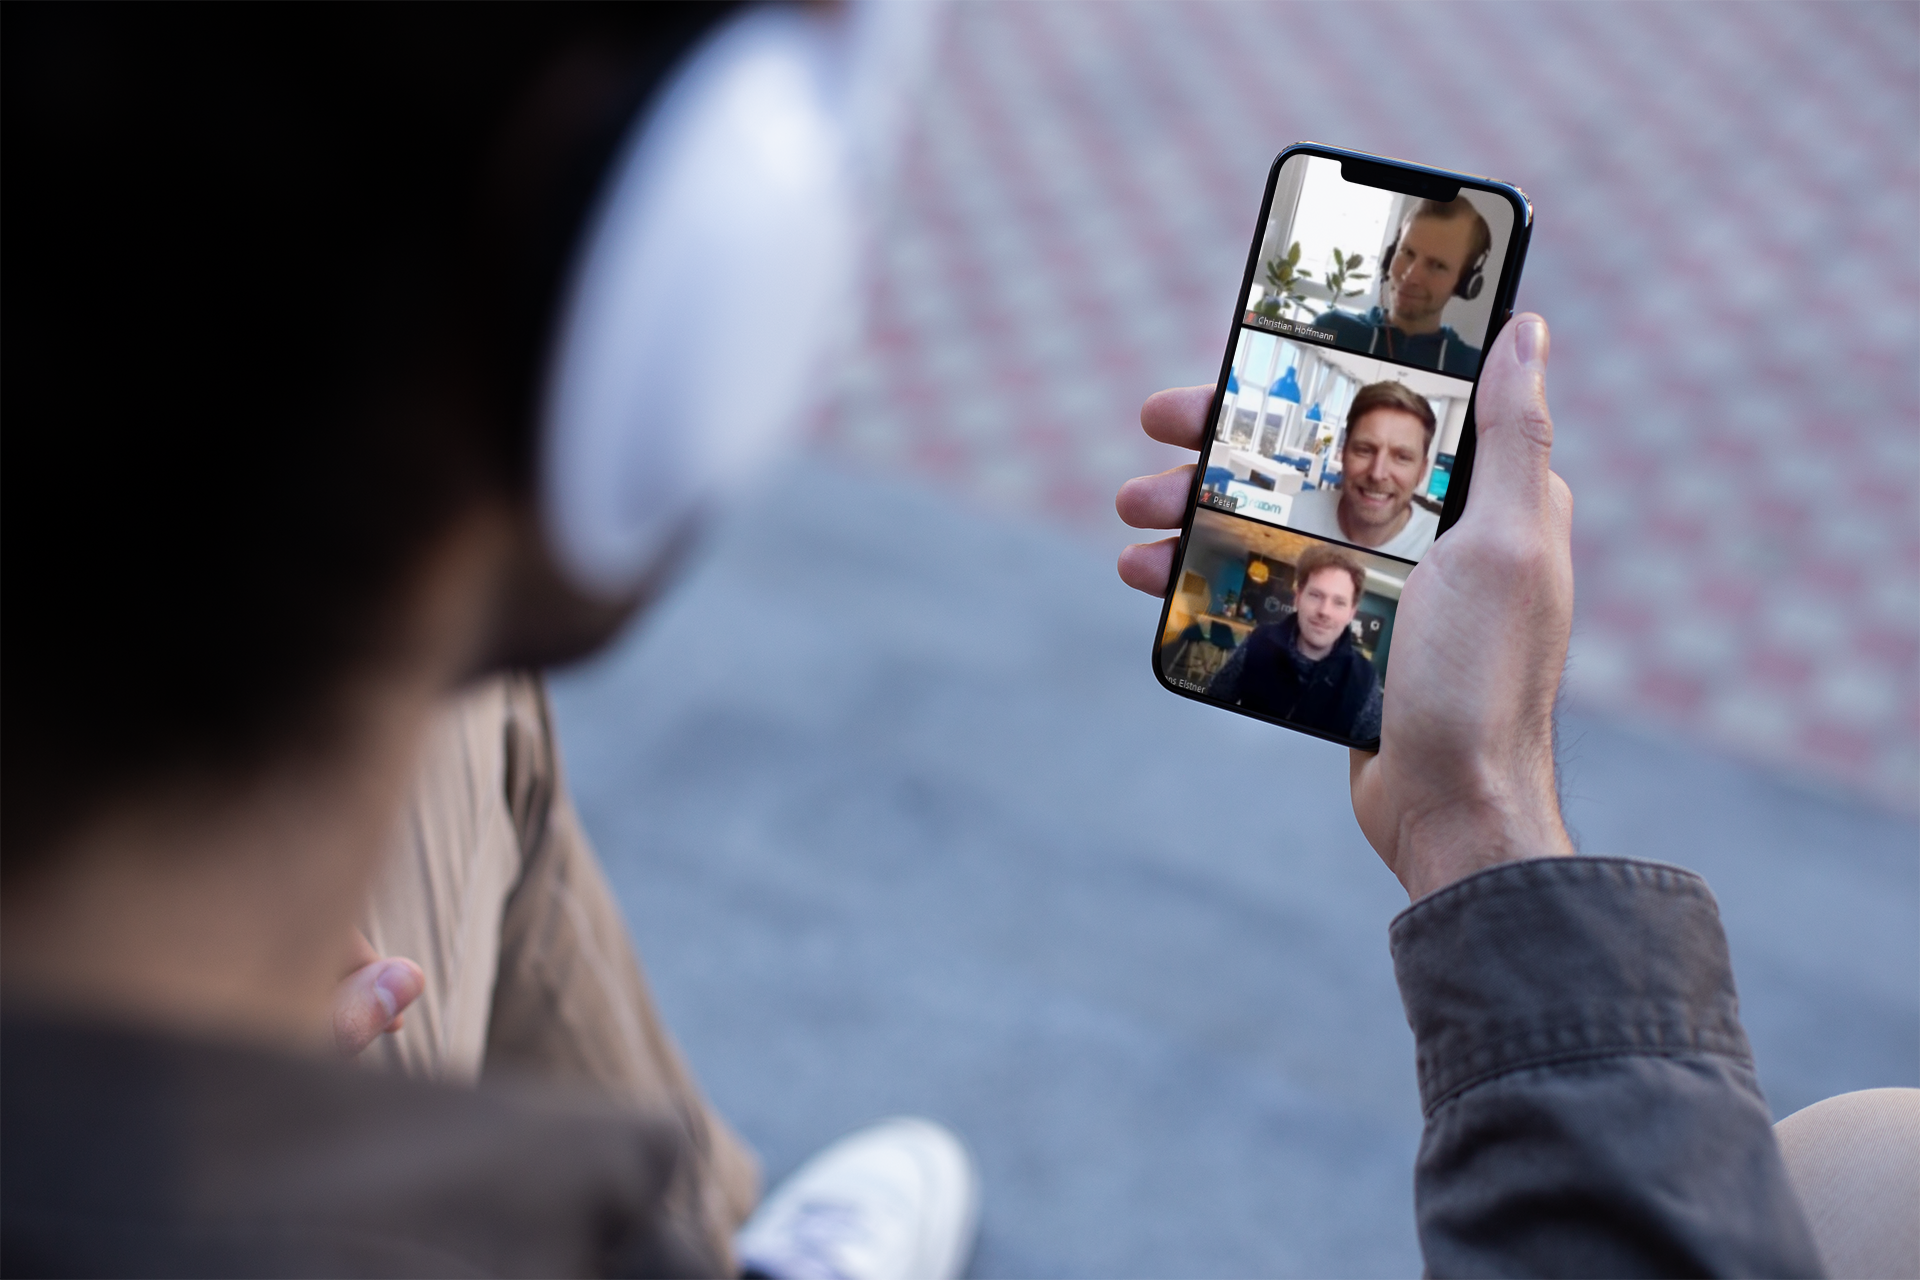 mockup-for-a-podcast-with-a-man-wearing-headphones-and-holding-an-iphone-xs-max-24811 (1)